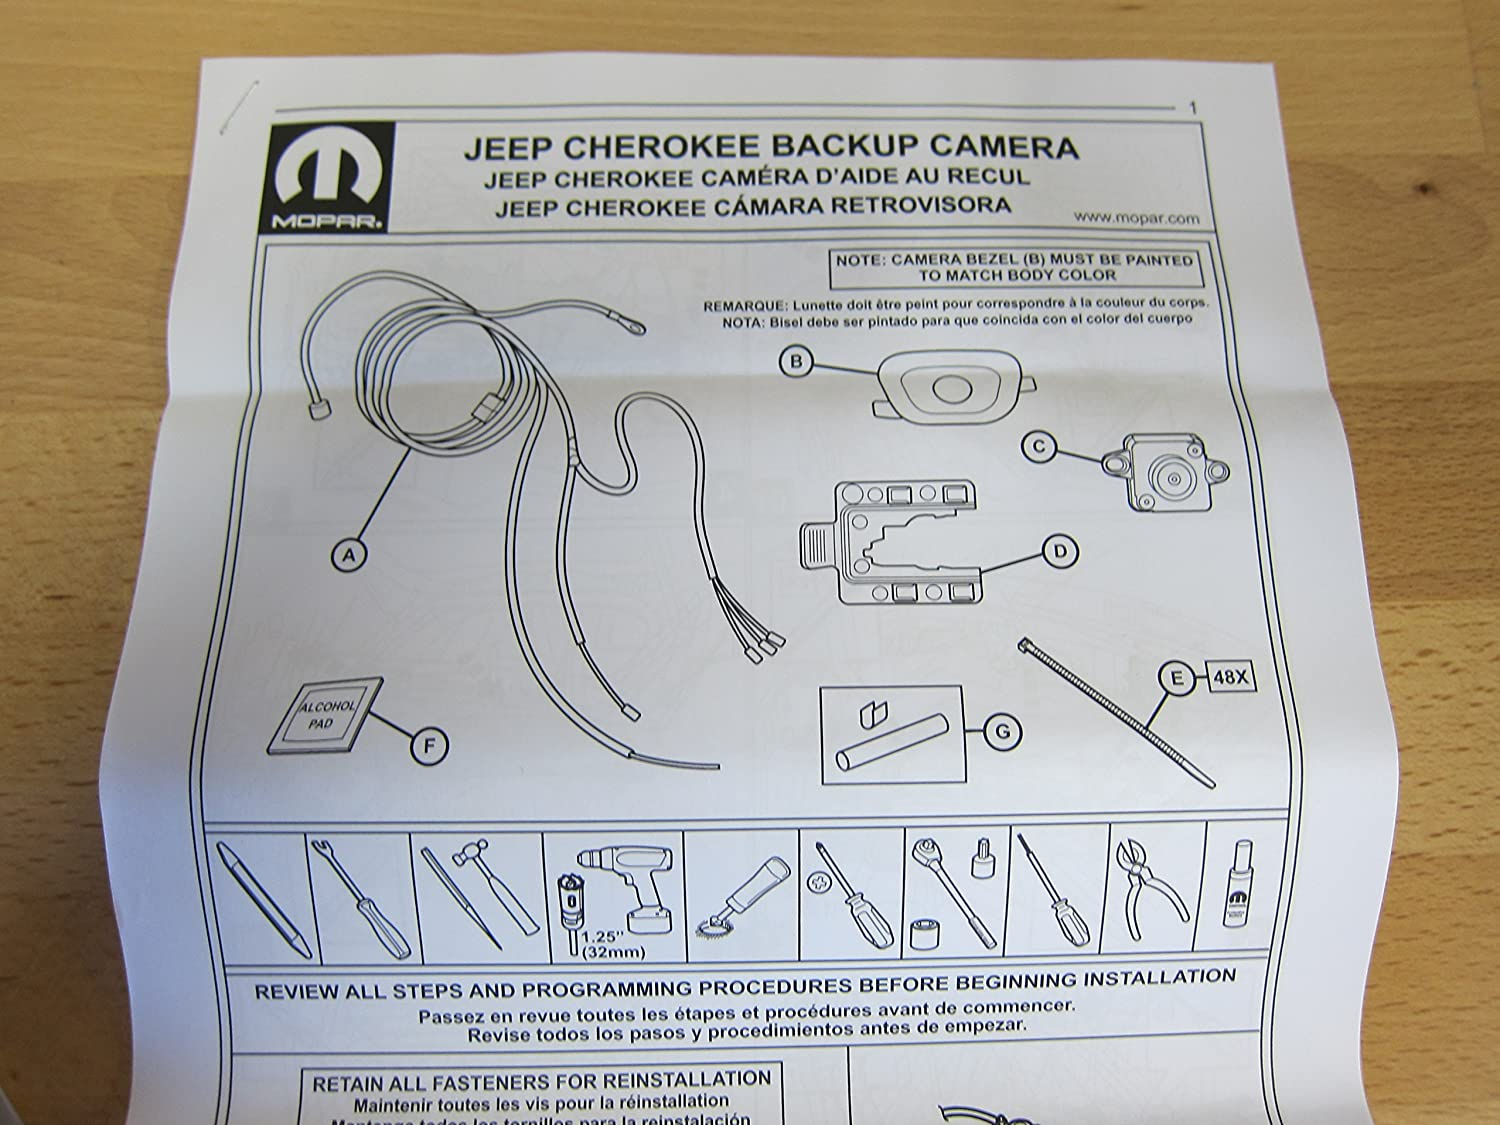 2007 jeep grand cherokee backup camera wiring diagram amazon com jeep cherokee rear view reverse back up camera kit  jeep cherokee rear view reverse